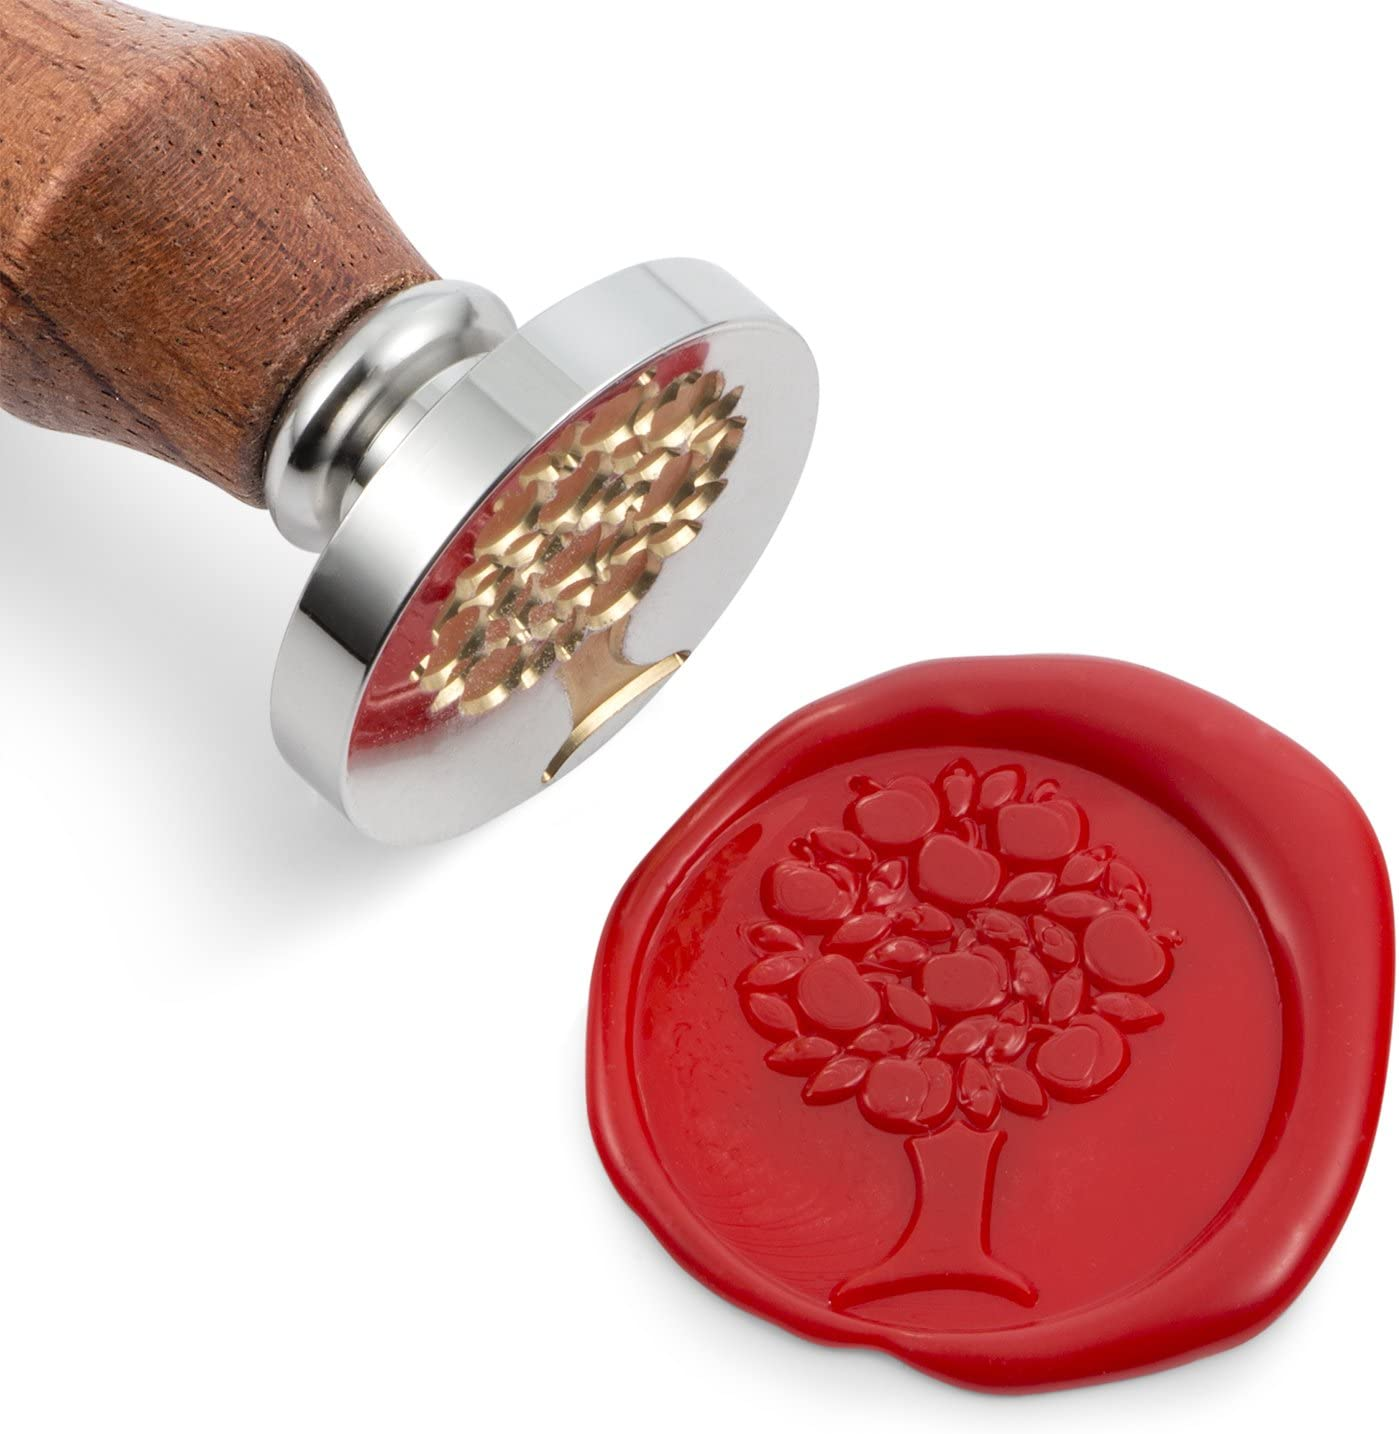 Mceal Wax Seal Stamp, Silver Brass Head with Wooden Handle, Apple Tree